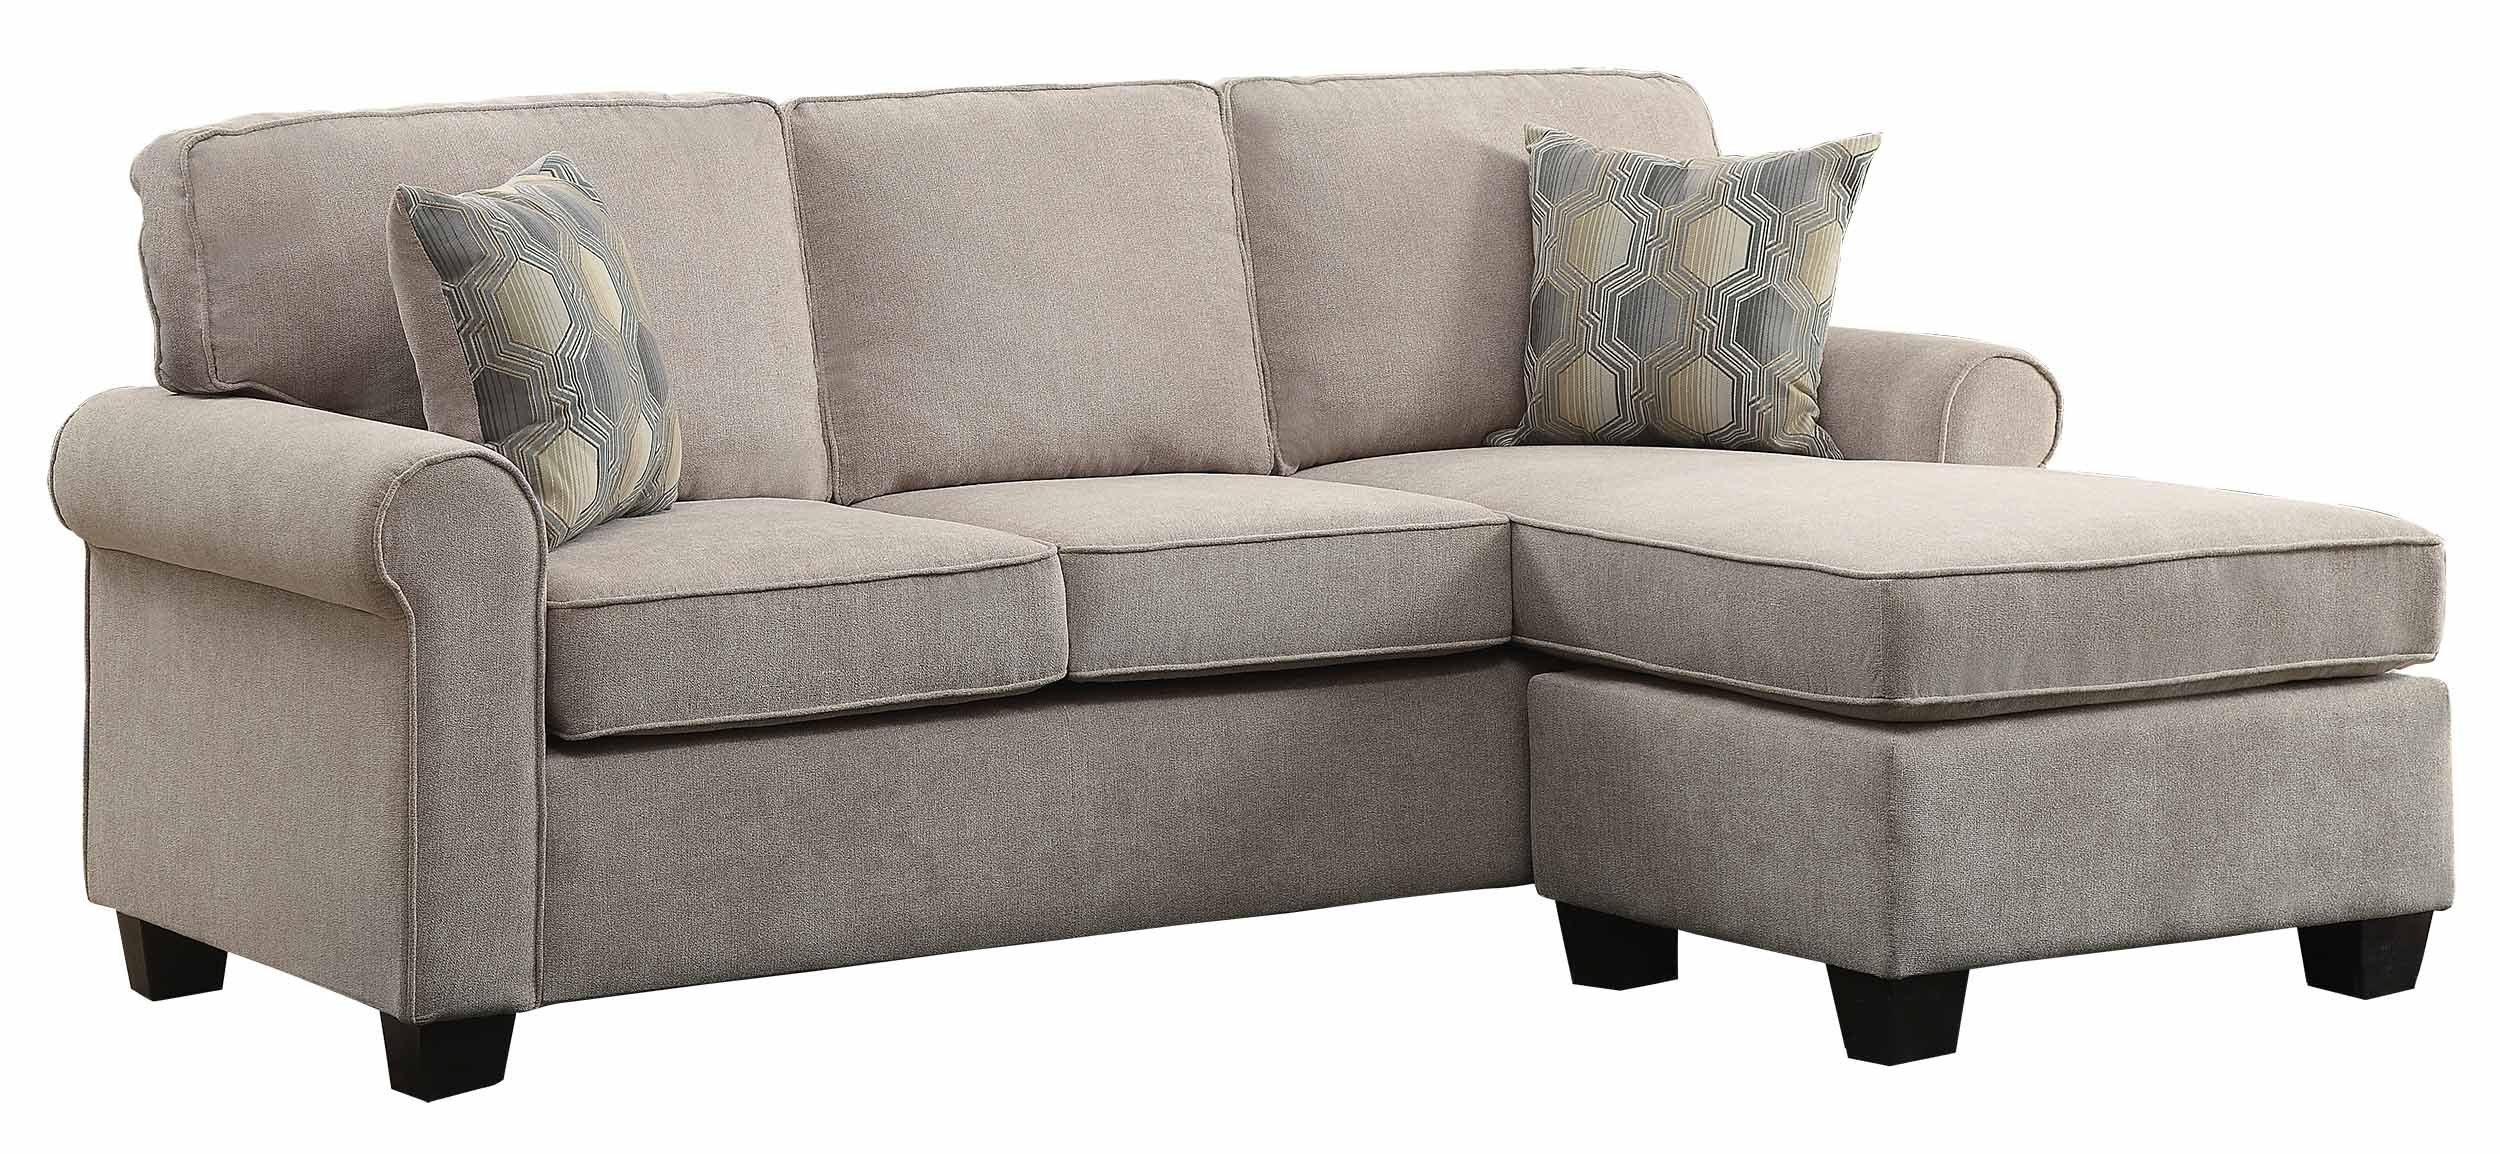 Homelegance Clumber 82'' Reversible Sectional with Accent Pillows, Beige by Homelegance